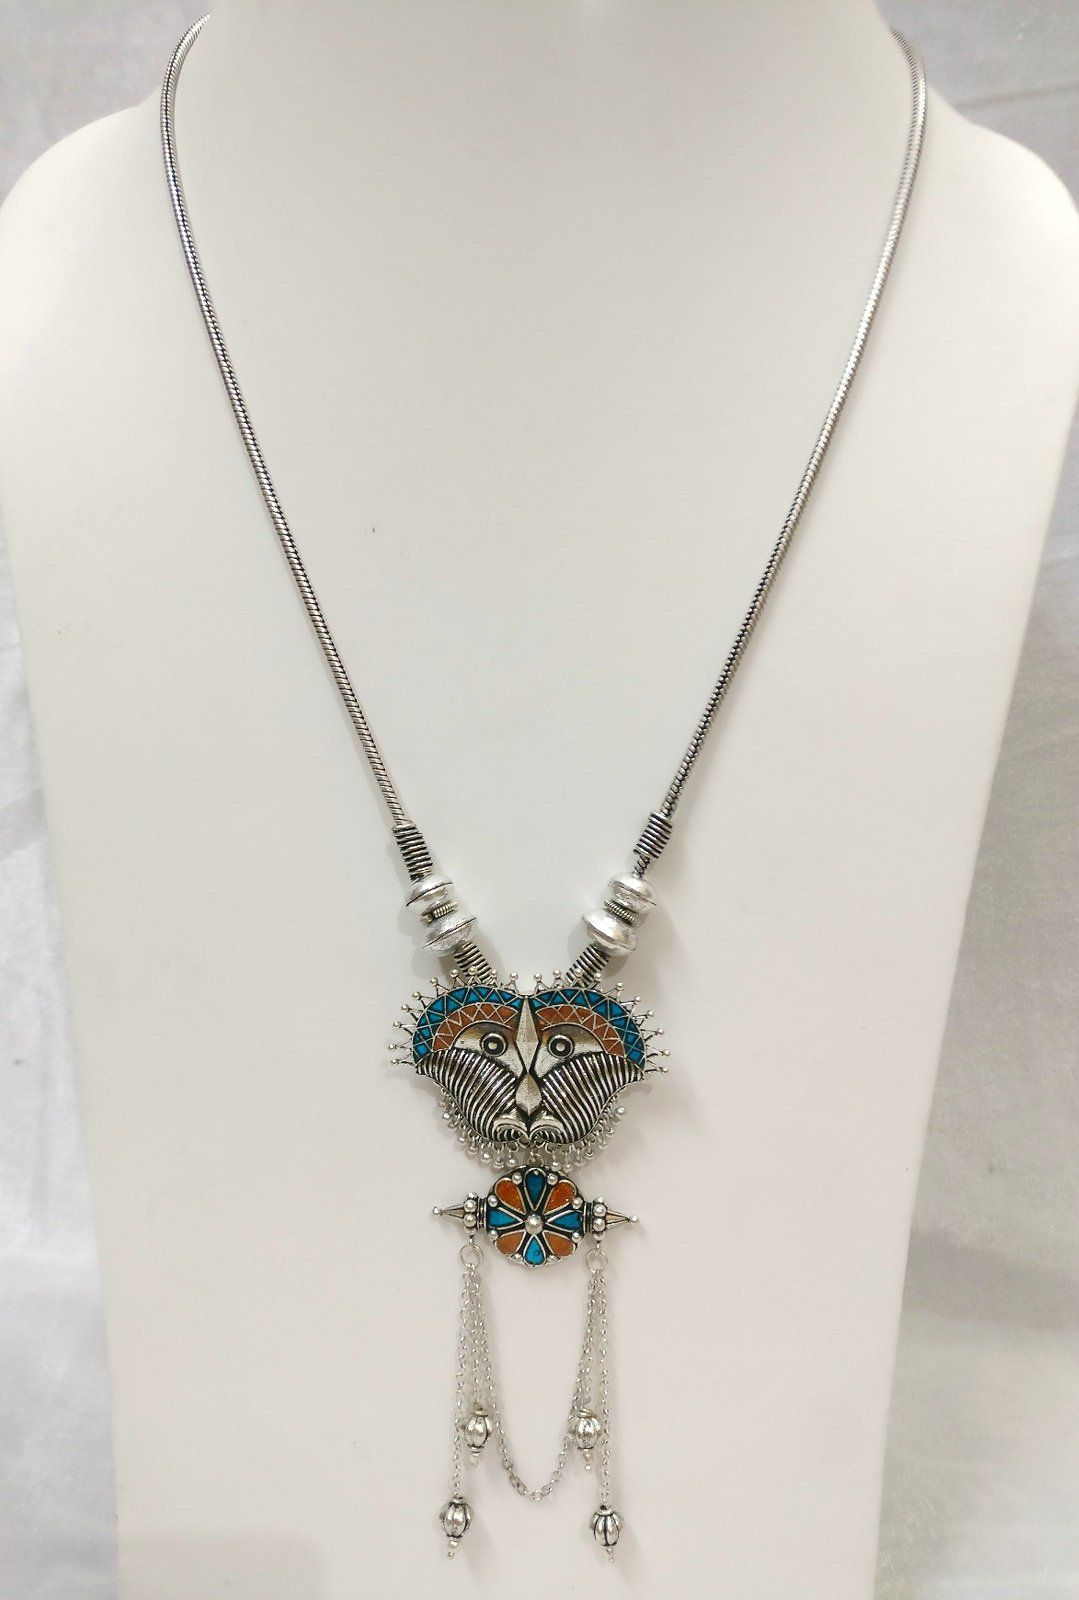 Women handmade silver oxidized pendant necklace jewelry set colorful